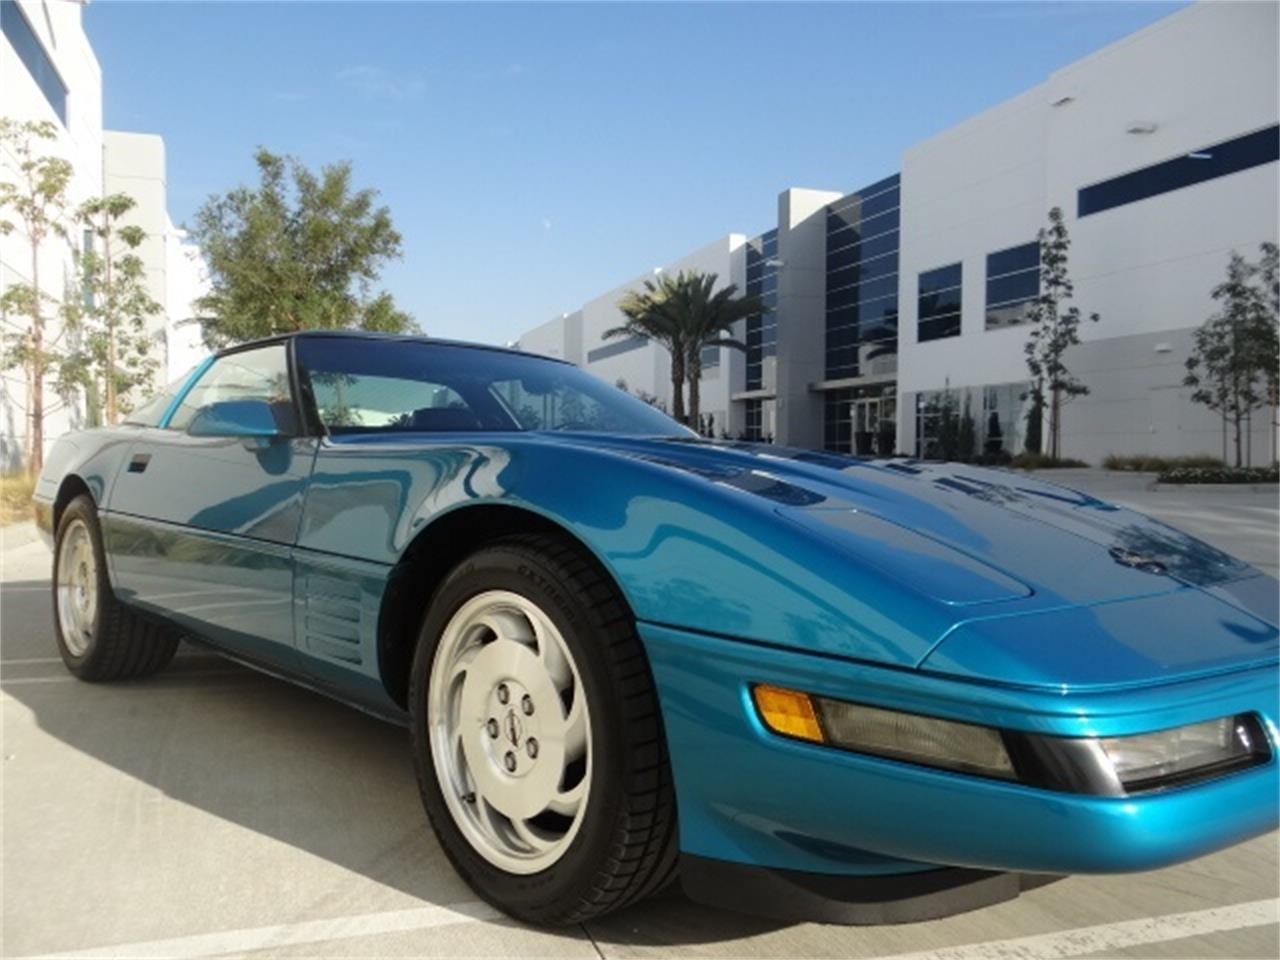 Large Picture of '93 Chevrolet Corvette located in California - $13,999.00 - MO6A